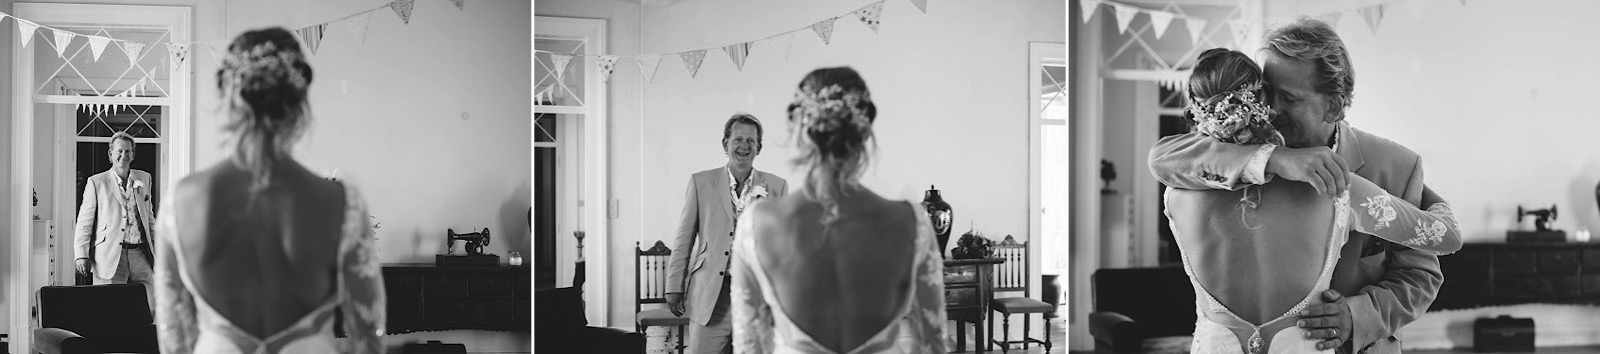 portugal_wedding_photographers0011